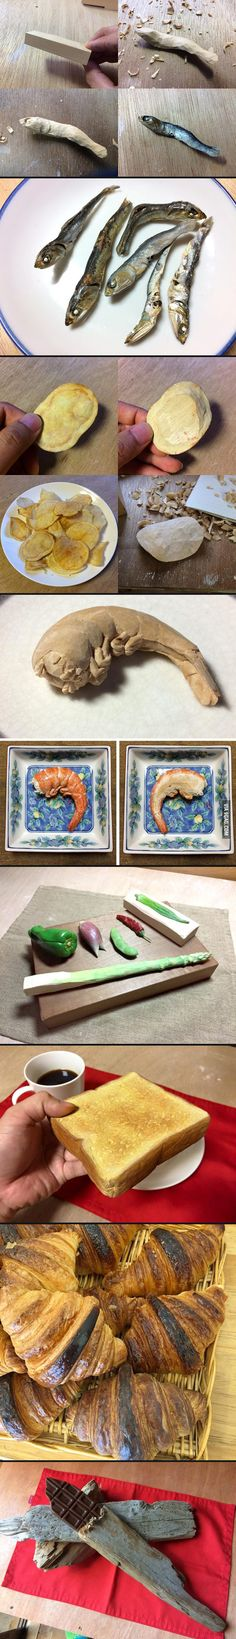 Realistic wooden food